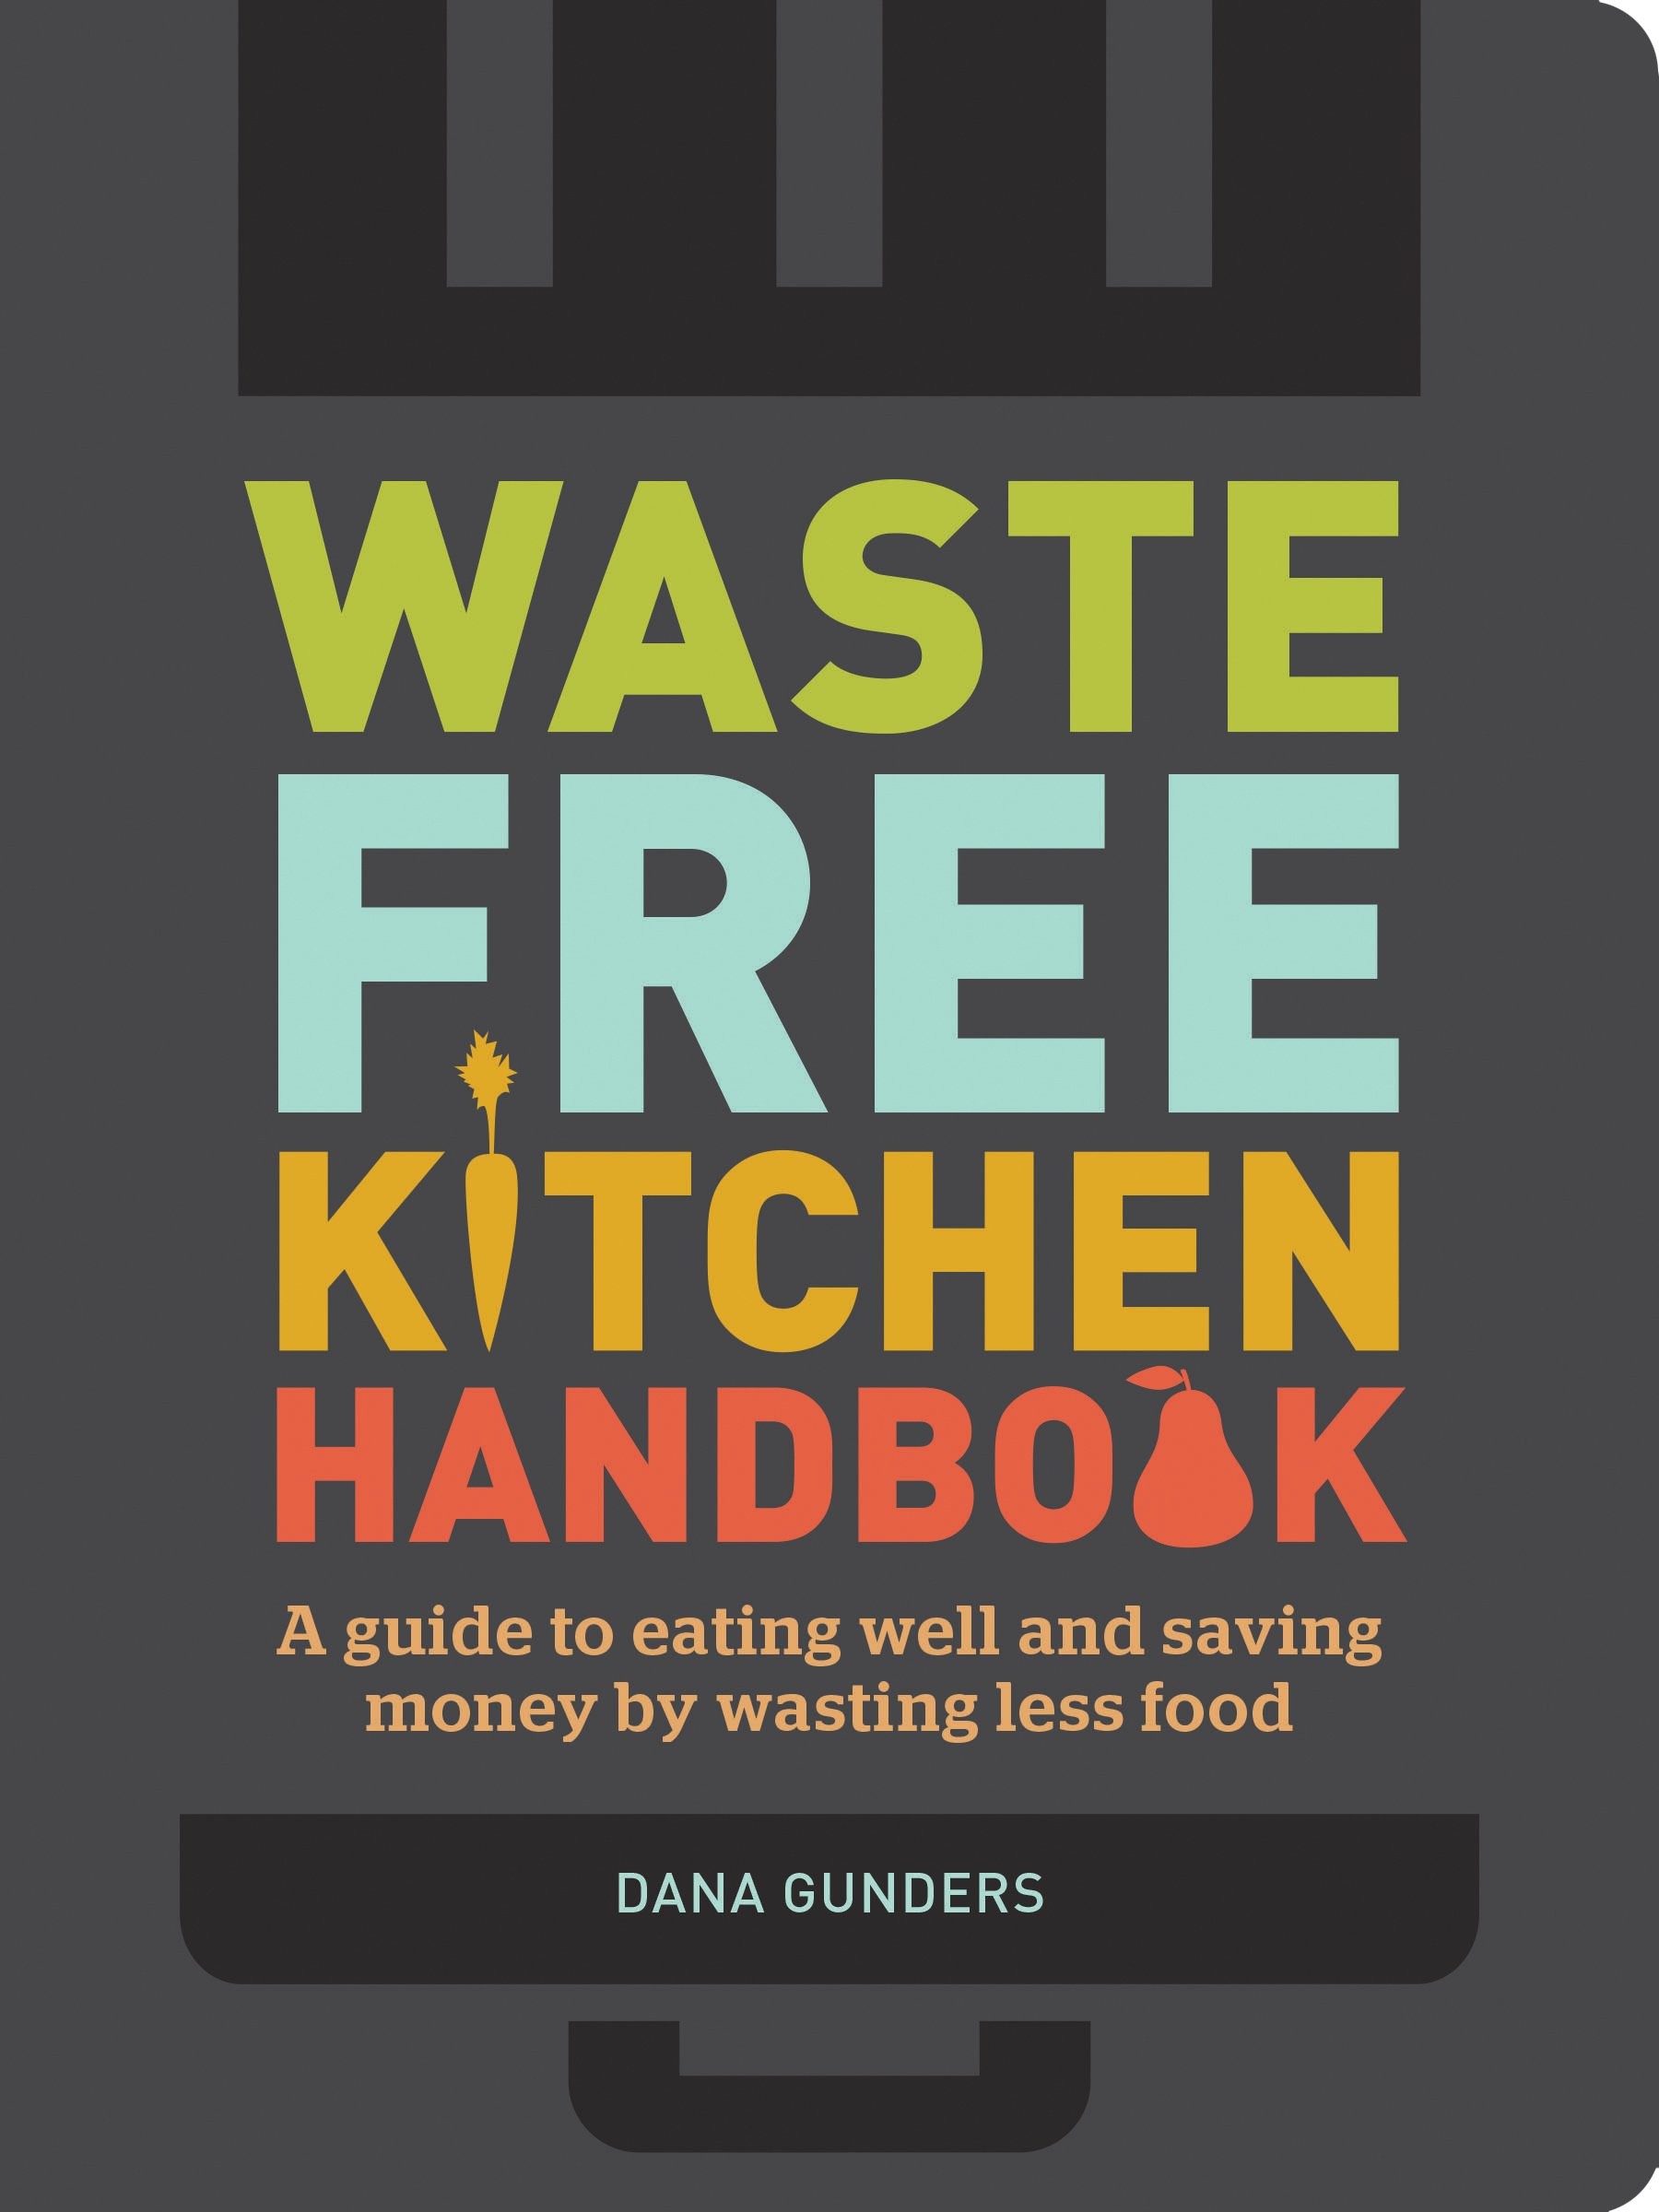 Waste free kitchen handbook a guide to eating well and saving money waste free kitchen handbook a guide to eating well and saving money by wasting less food dana gunders 9781452133546 amazon books fandeluxe Gallery